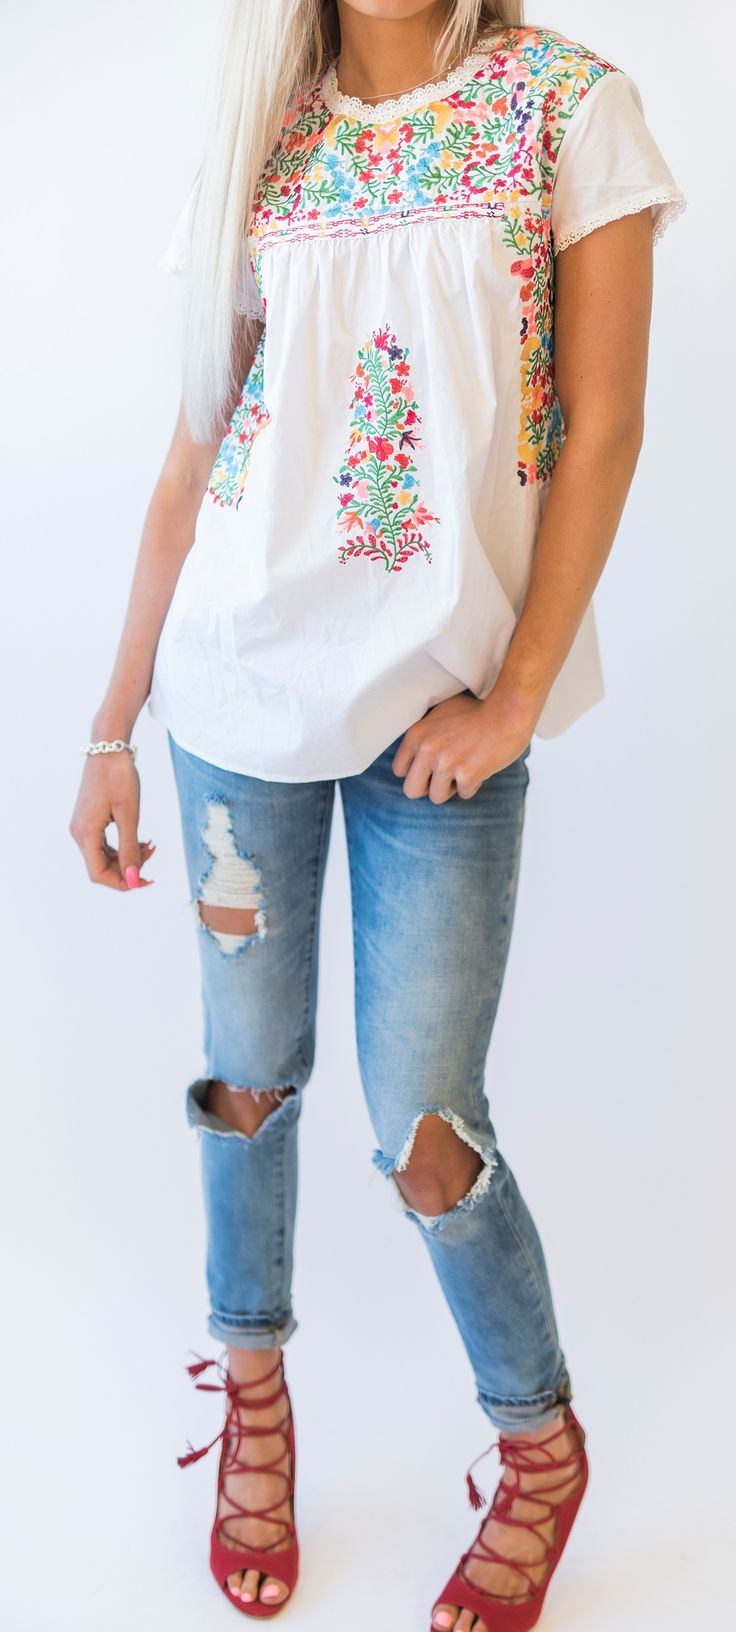 Gabby Embroidered Top - Mindy Mae's Market - online boutique for cute clothes